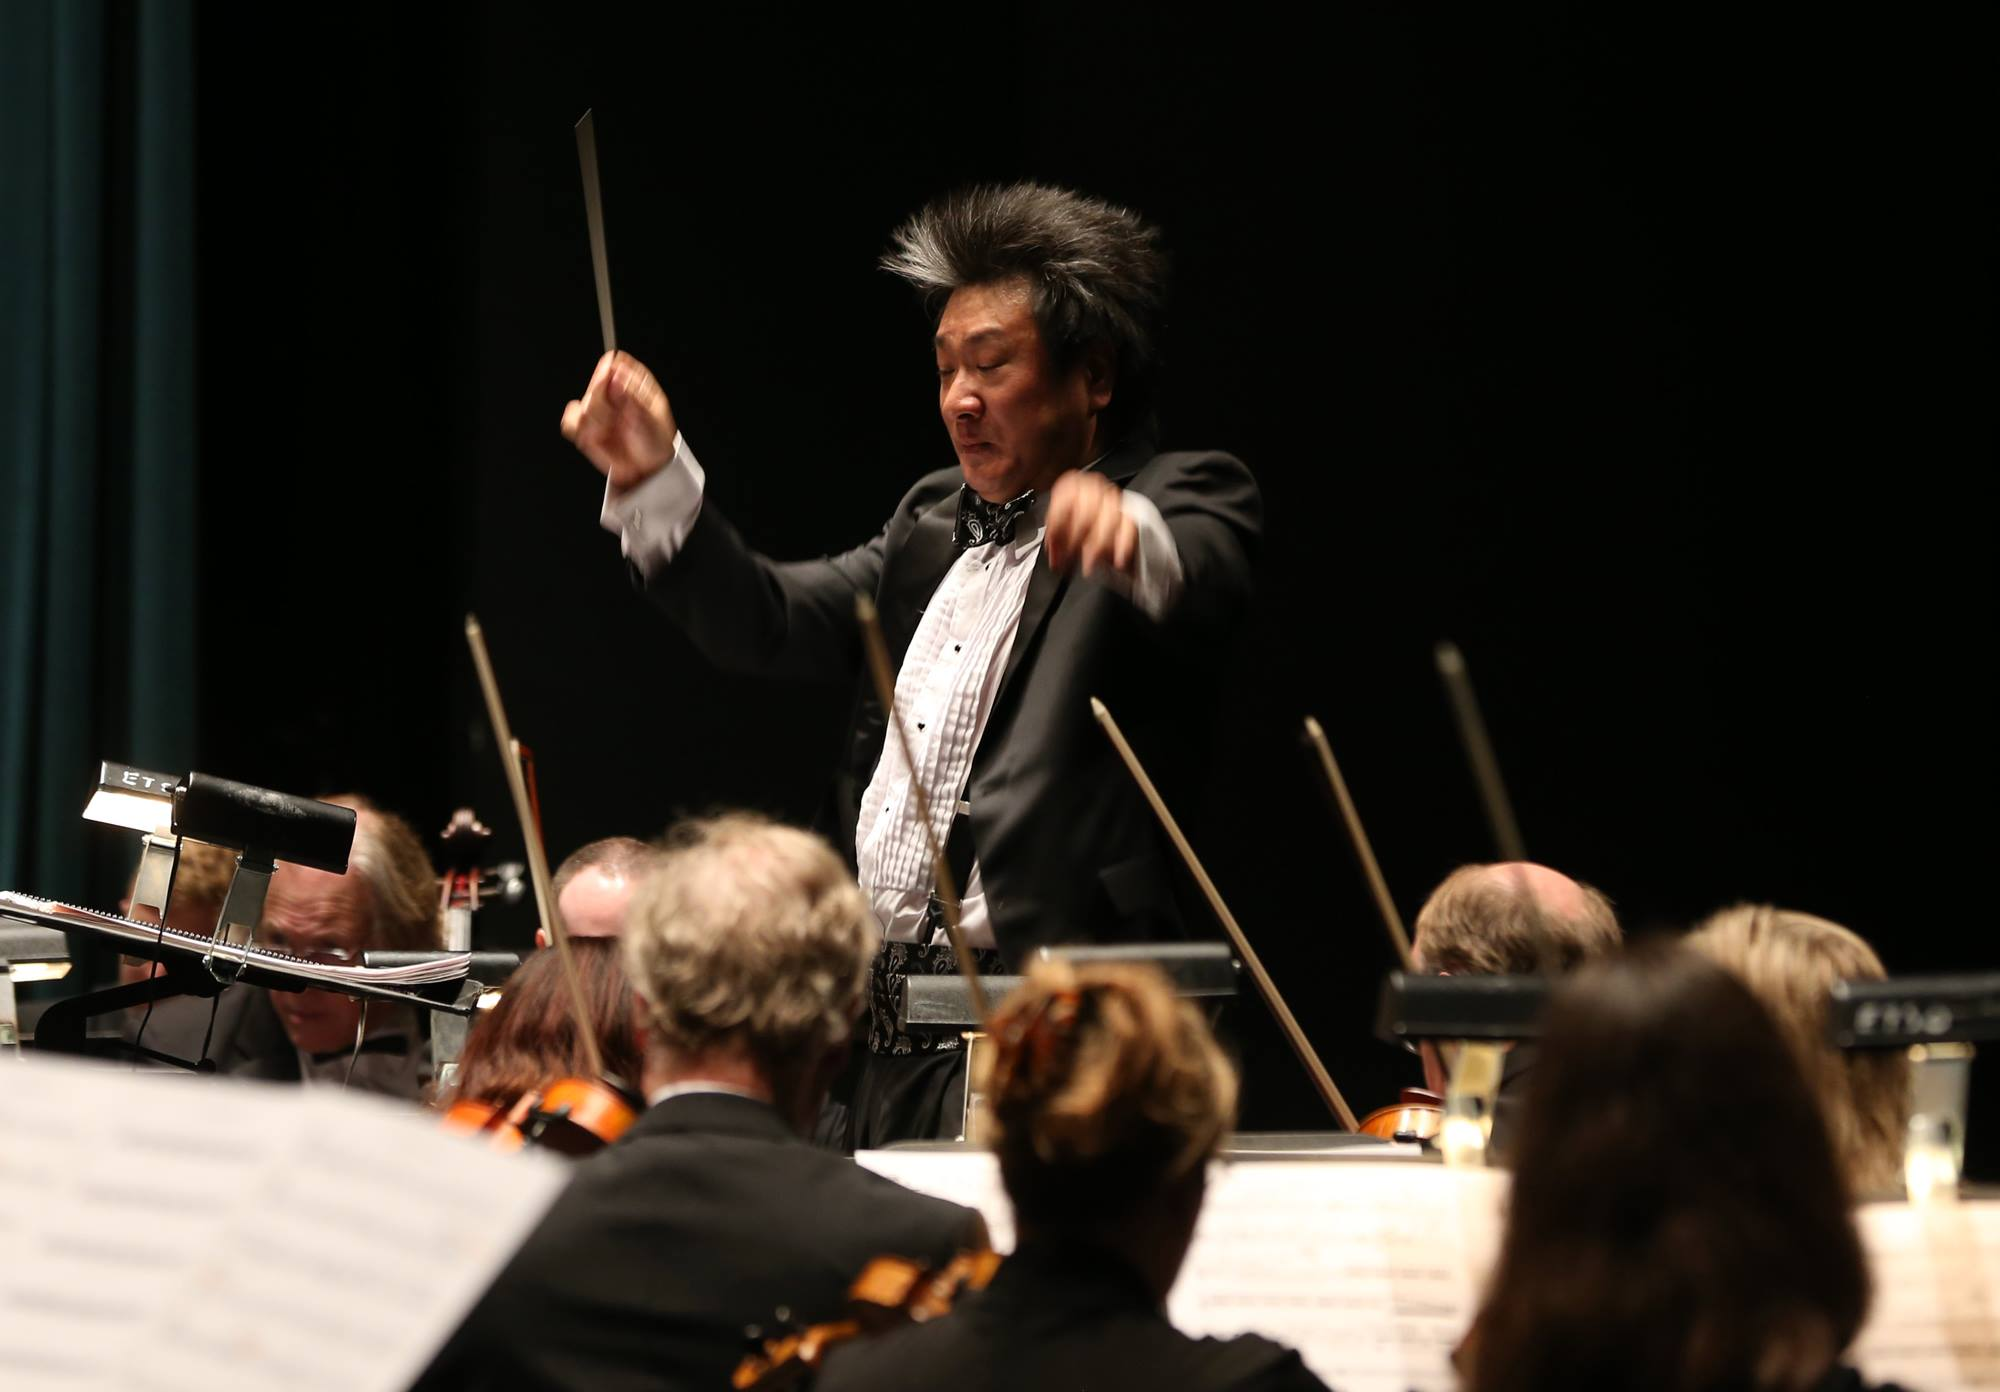 In March, the East Texas Symphony Orchestra premiered    Glacier Bay    under the direction of Richard Lee.